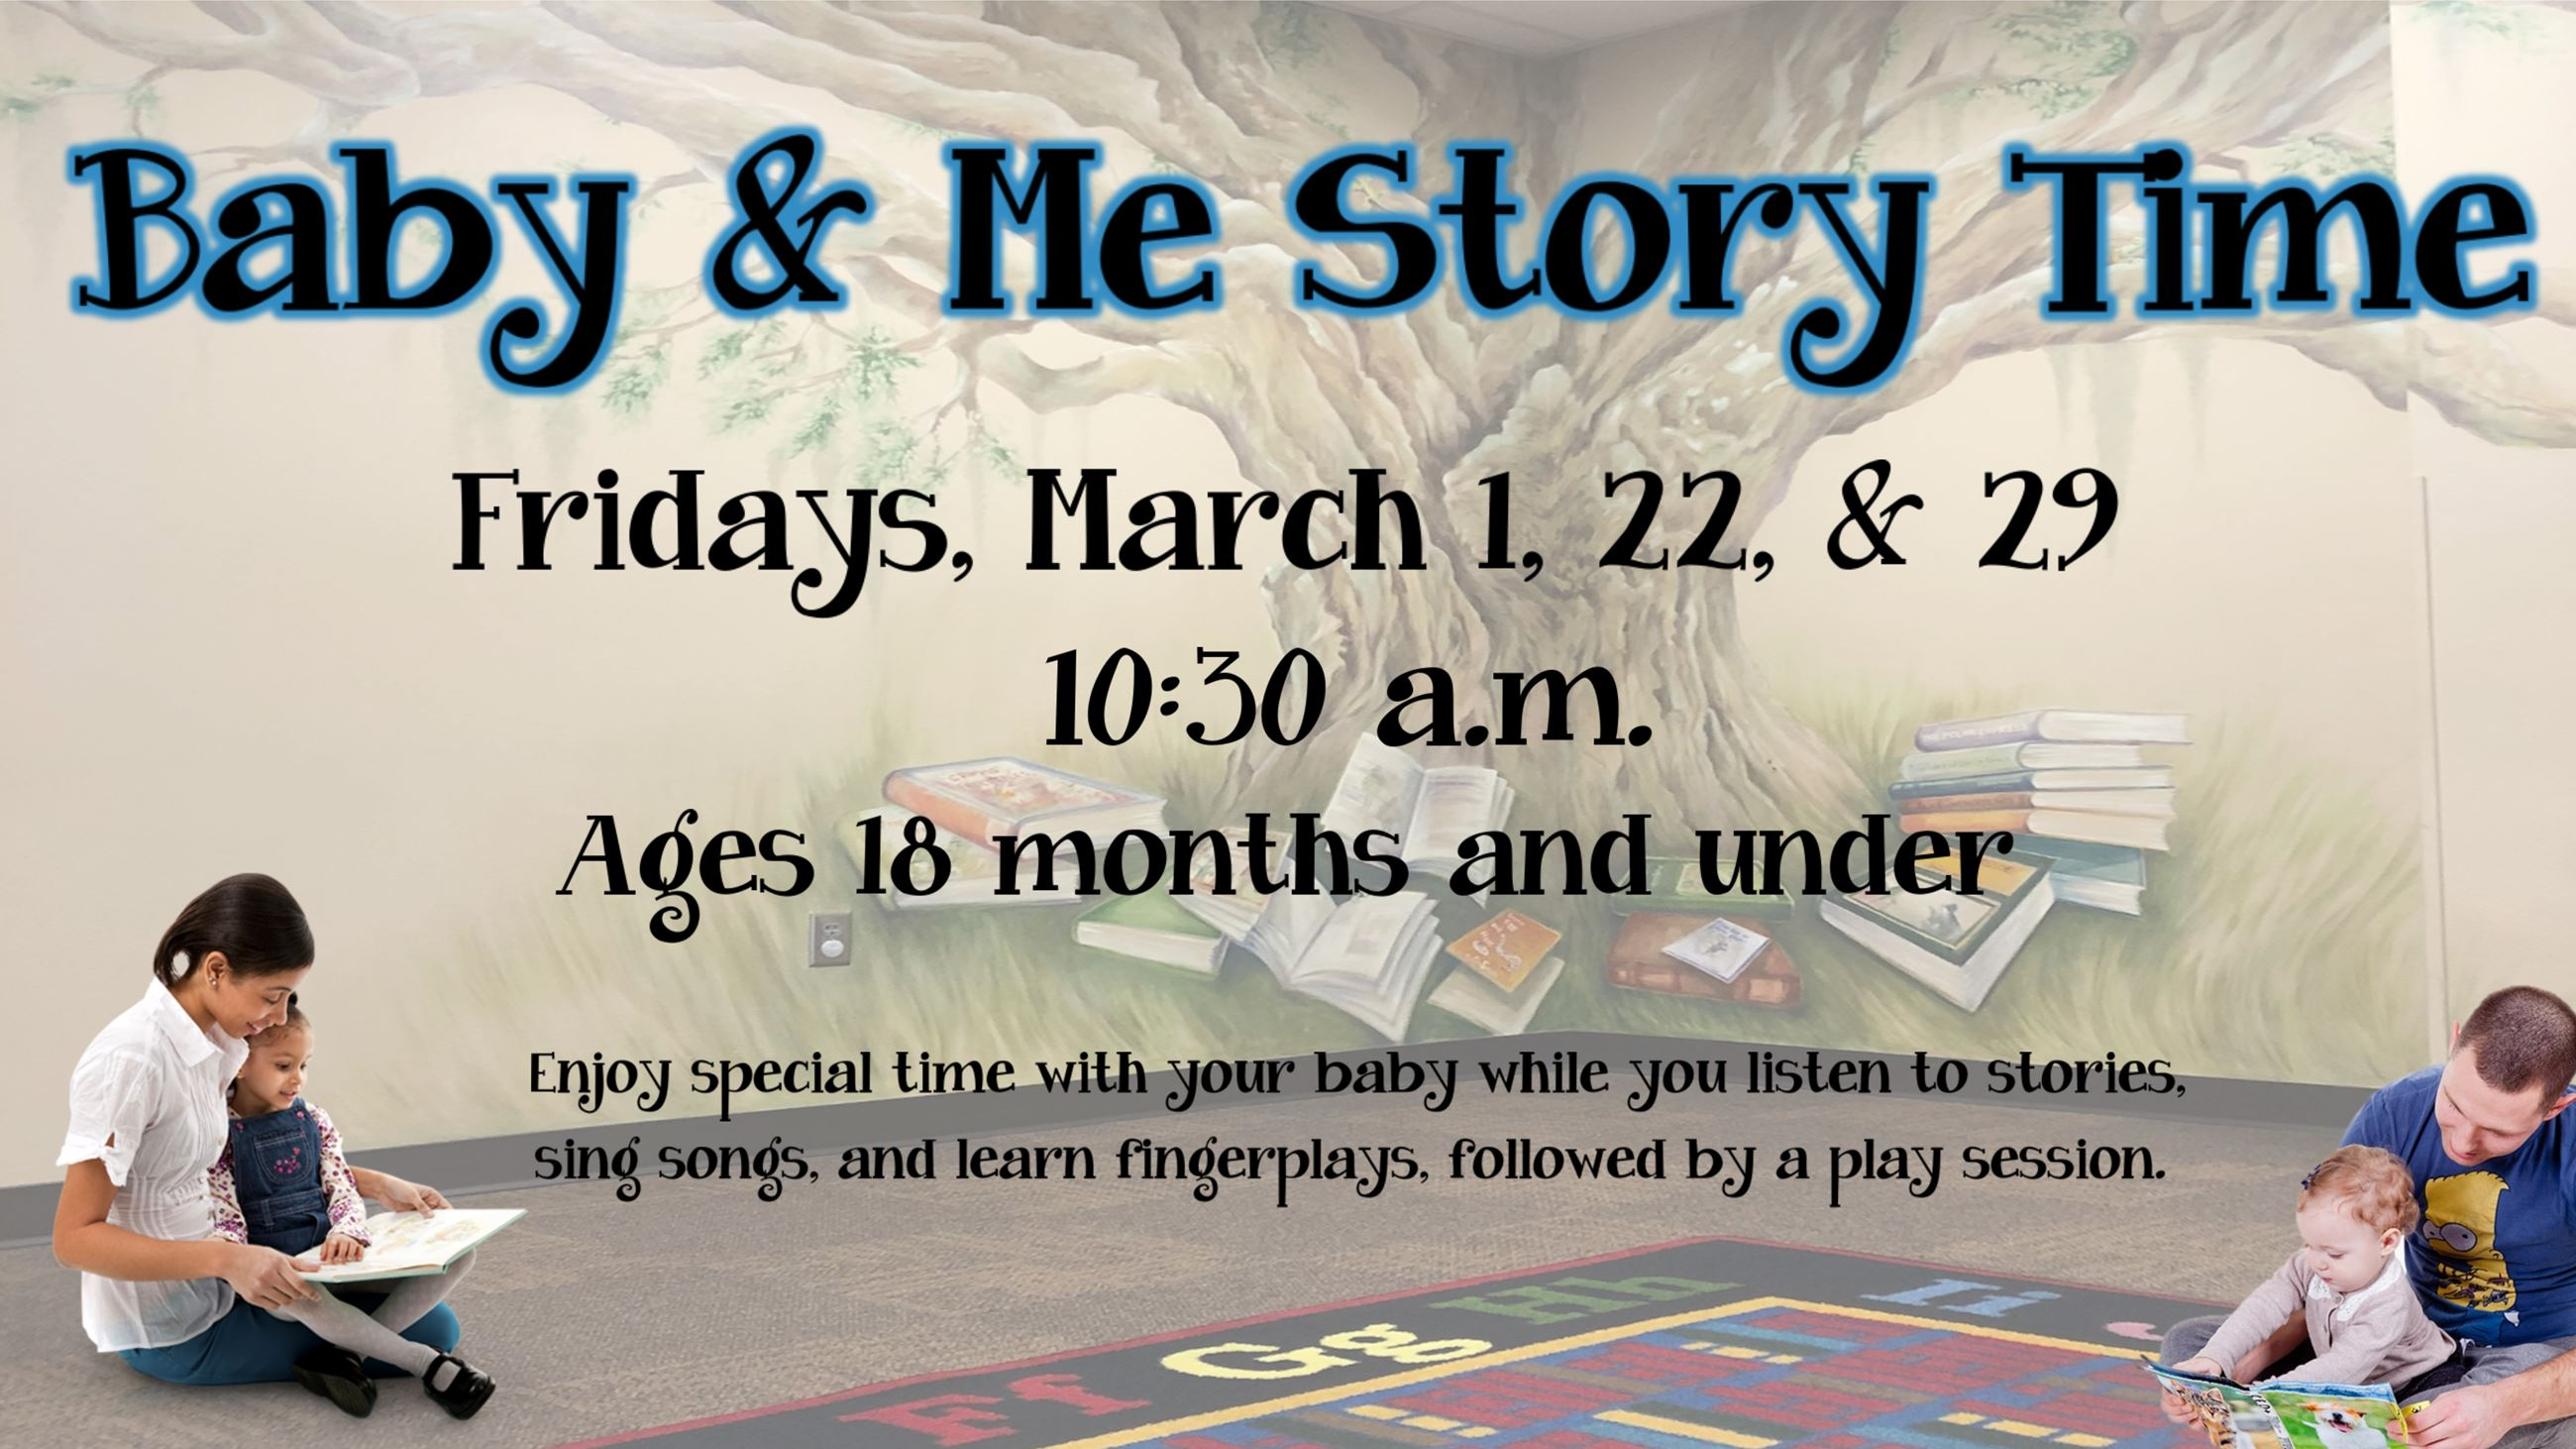 Baby and Me Story Time. March 1, 22, & 29, at 10:30 AM. Ages 18 months & under.